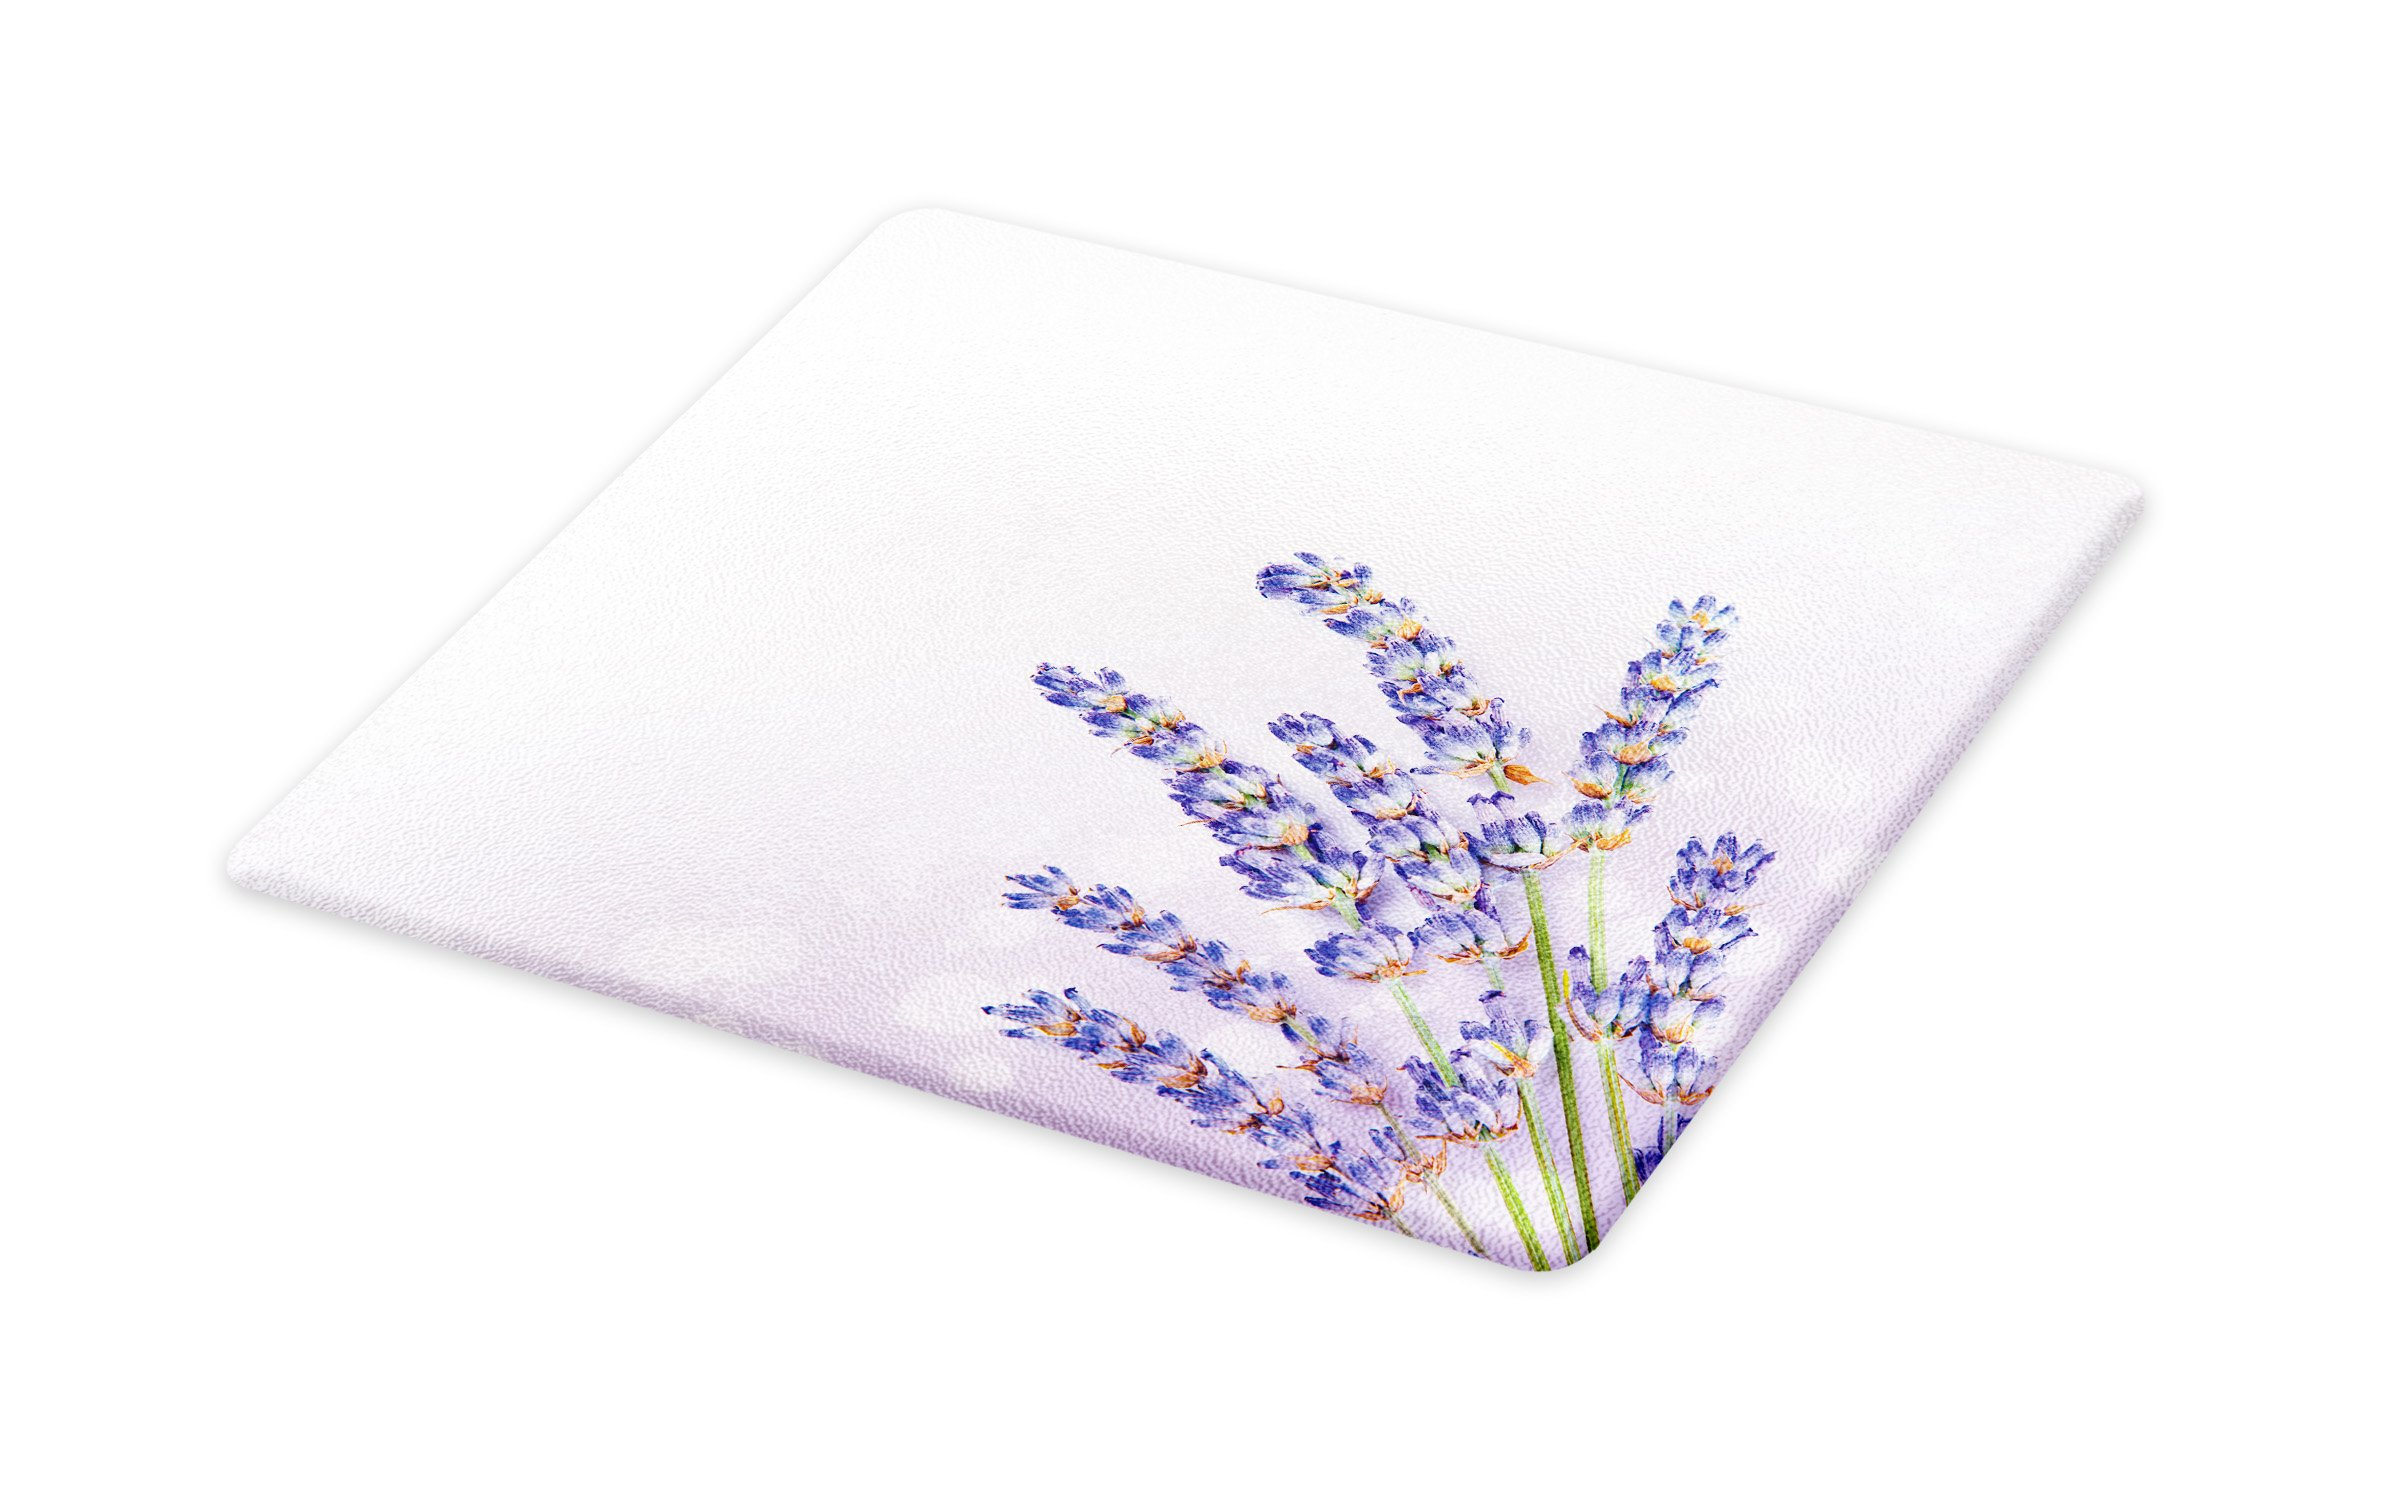 Ambesonne Lavender Cutting Board, Little Posy of Medicinal Herb Fresh Plant of Purple Flower Spa Aromatheraphy Organic, Decorative Tempered Glass Cutting and Serving Board, Small Size, Lavander